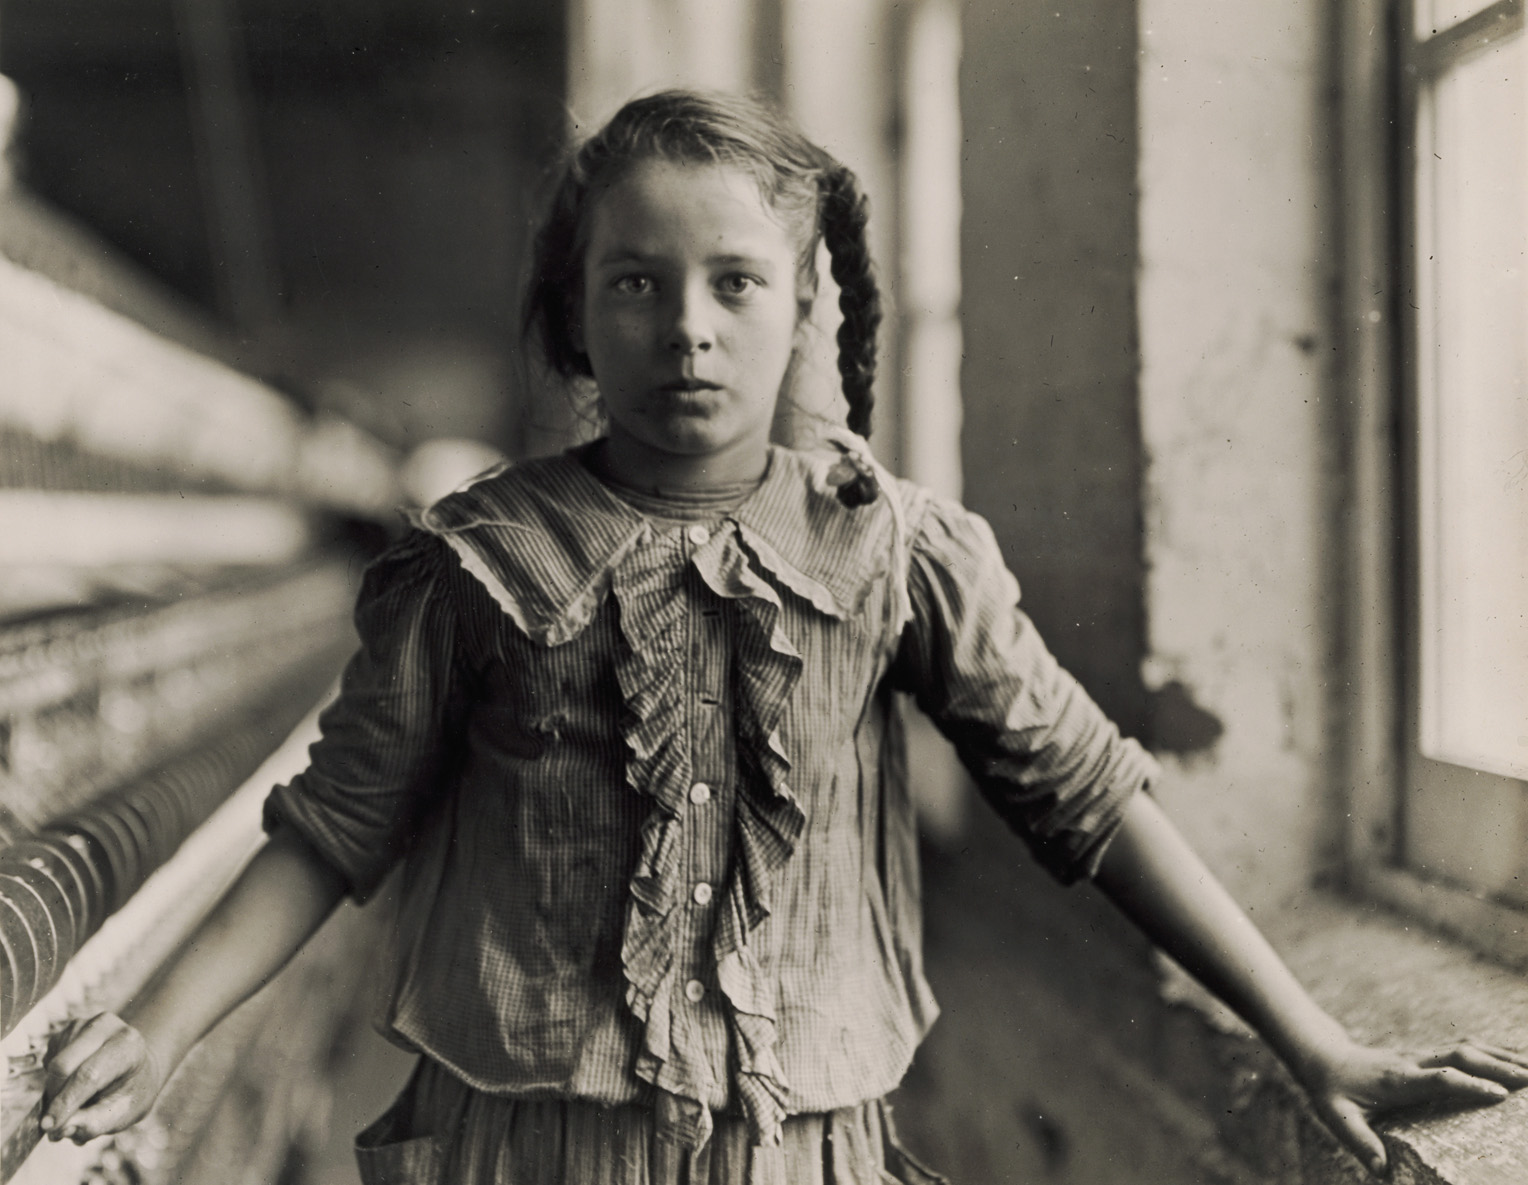 Back and white photograph of a young girl working in a factory in 1908.